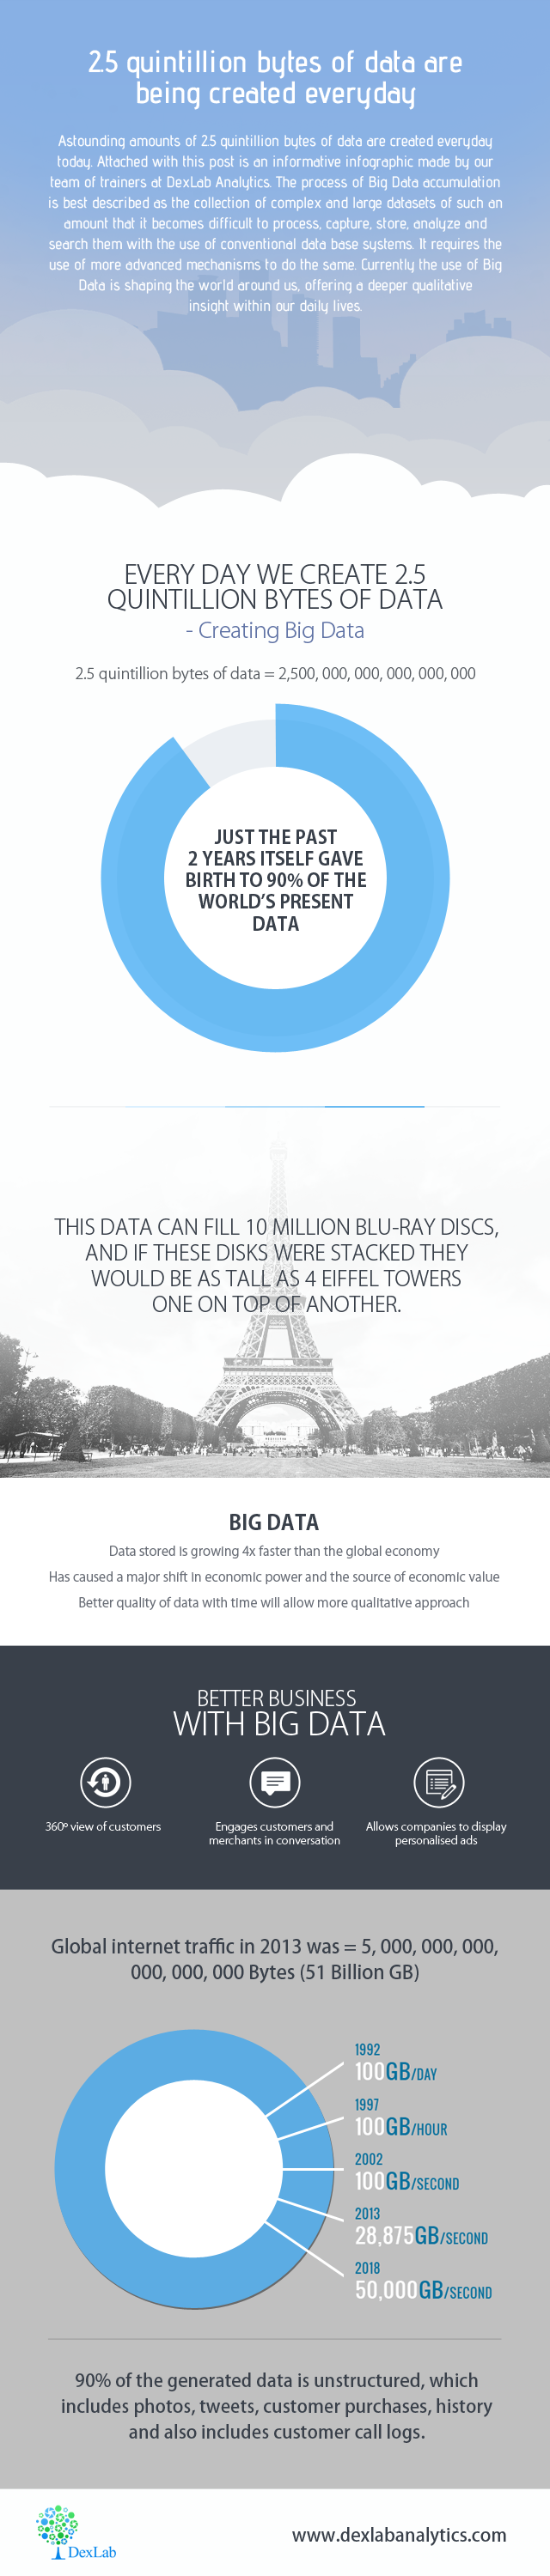 2.5 Quintillion Bytes of Data are Being Created Everyday